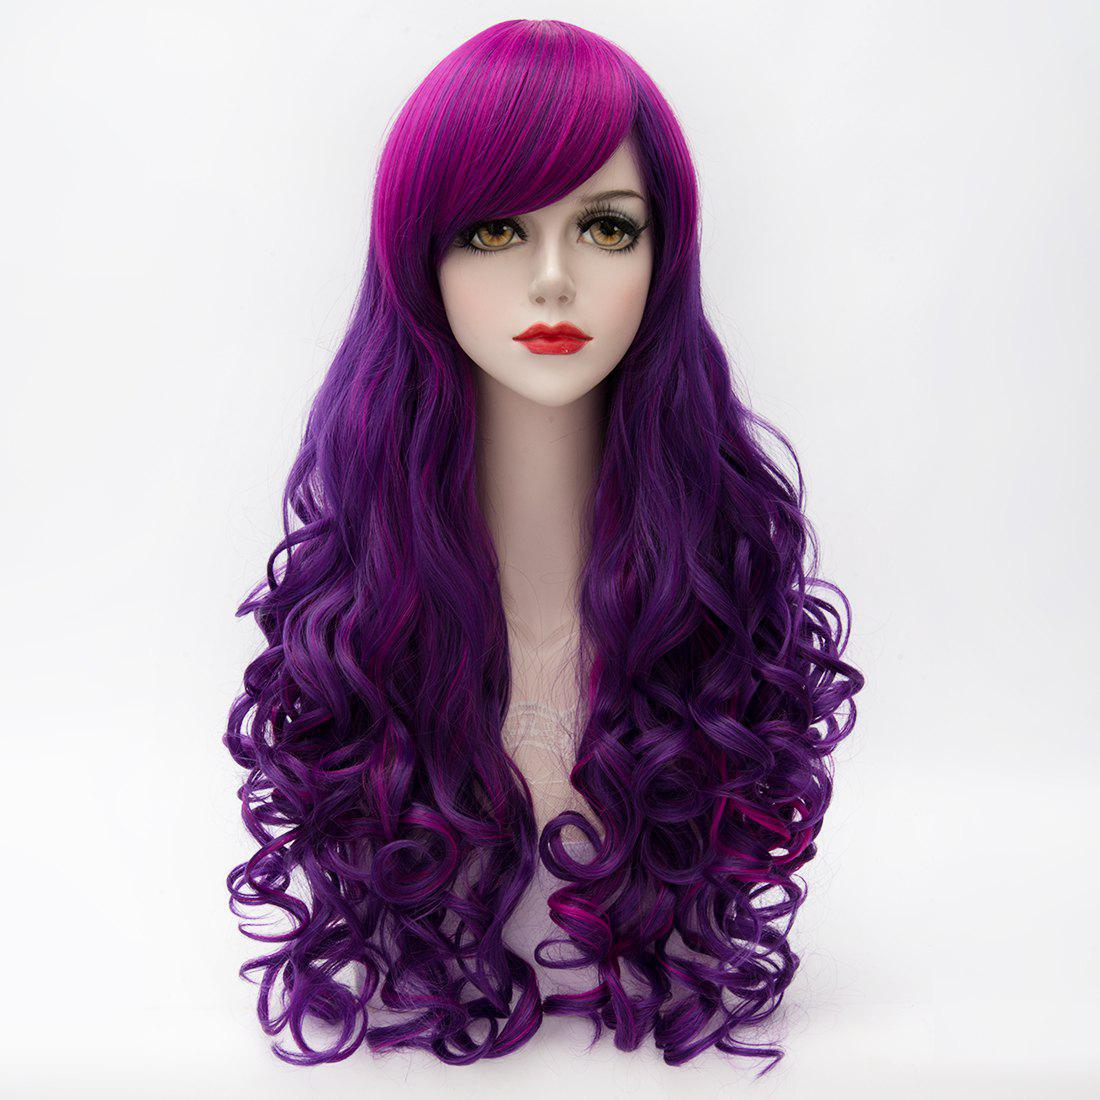 Fluffy Curly Long Charming Inclined Bang Capless Synthetic Purple Highlight Women's Cosplay Wig - COLORMIX